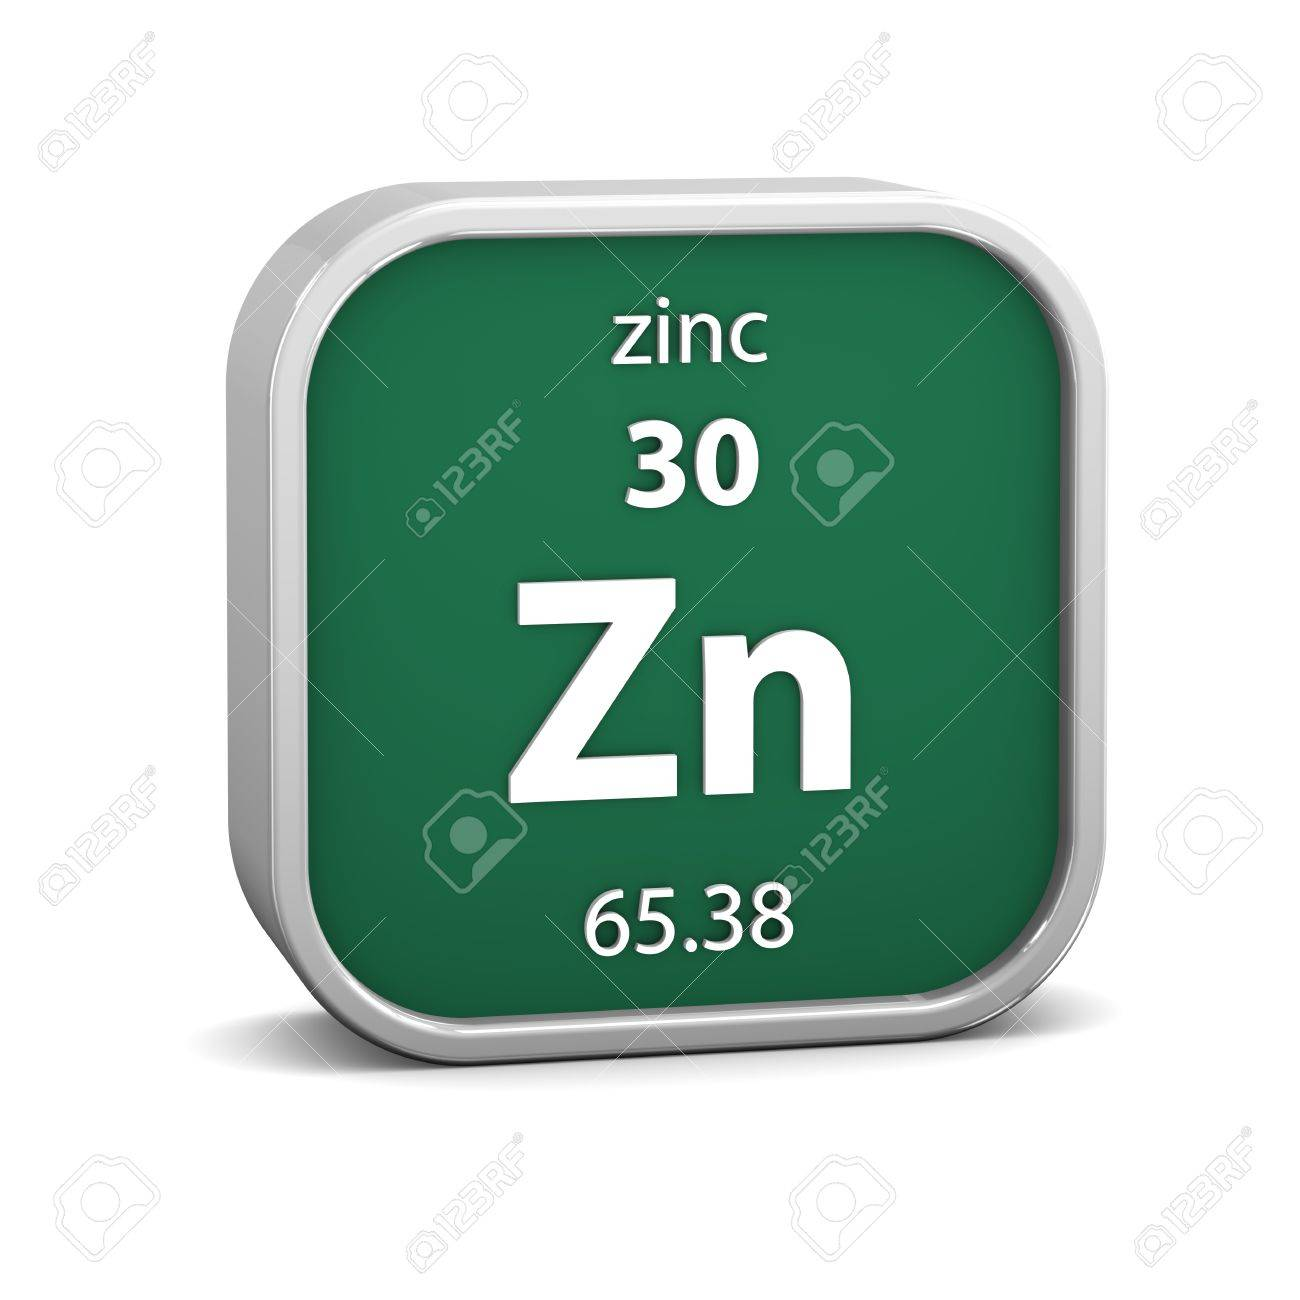 What is the symbol for copper on the periodic table image what is the symbol for zinc on the periodic table image what is zinc on the gamestrikefo Image collections